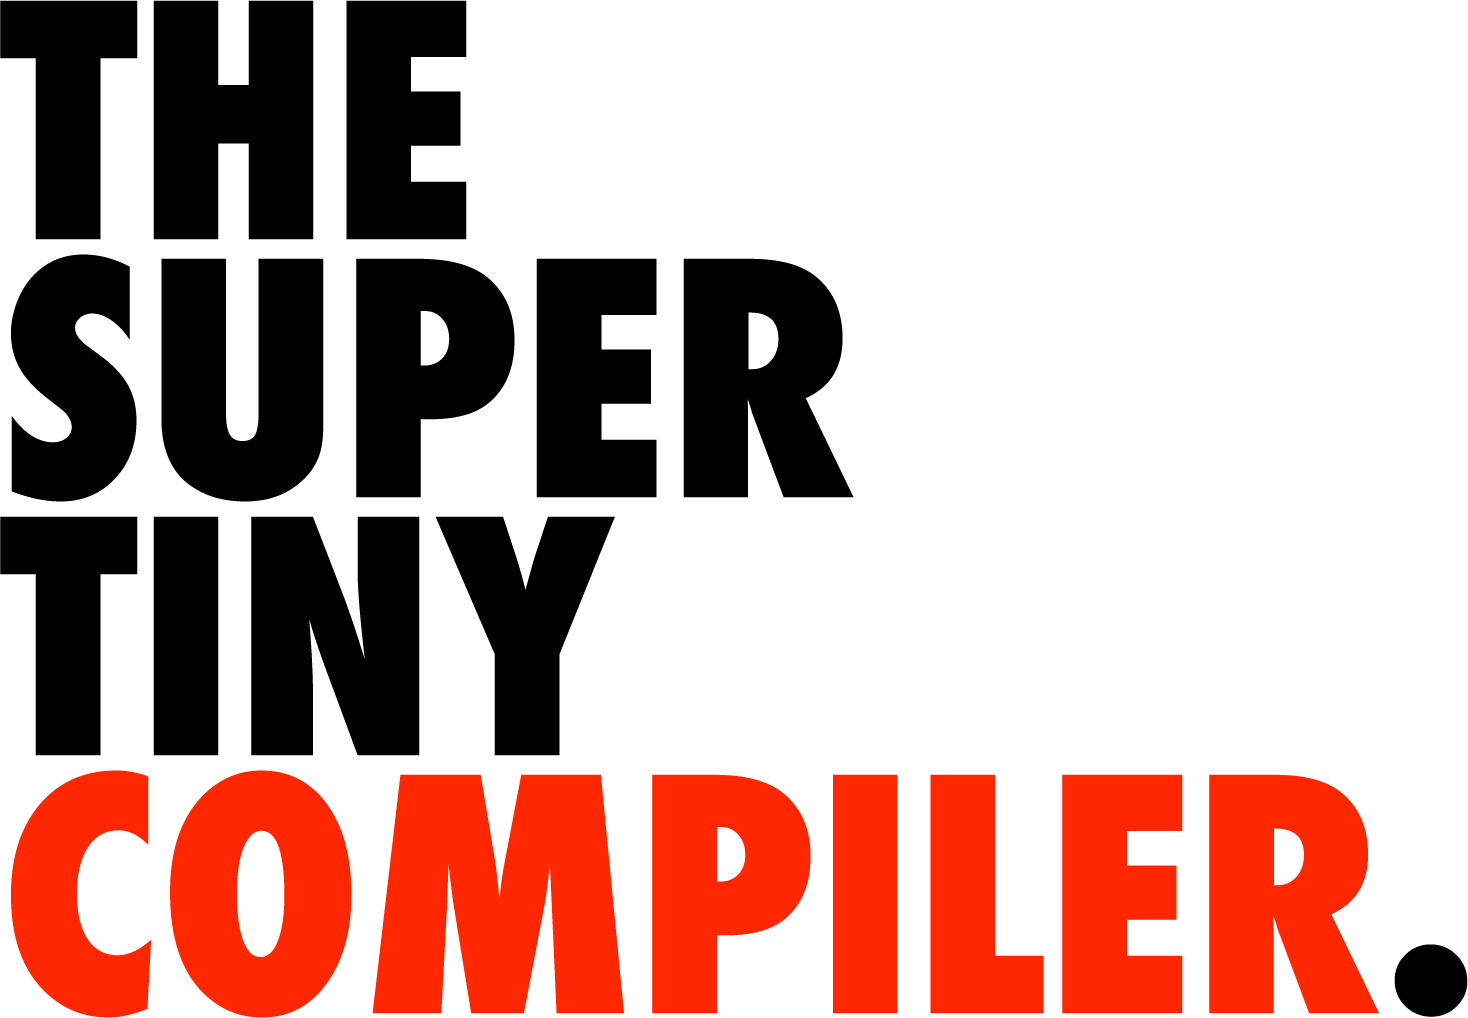 GitHub - jamiebuilds/the-super-tiny-compiler: Possibly the smallest compiler ever